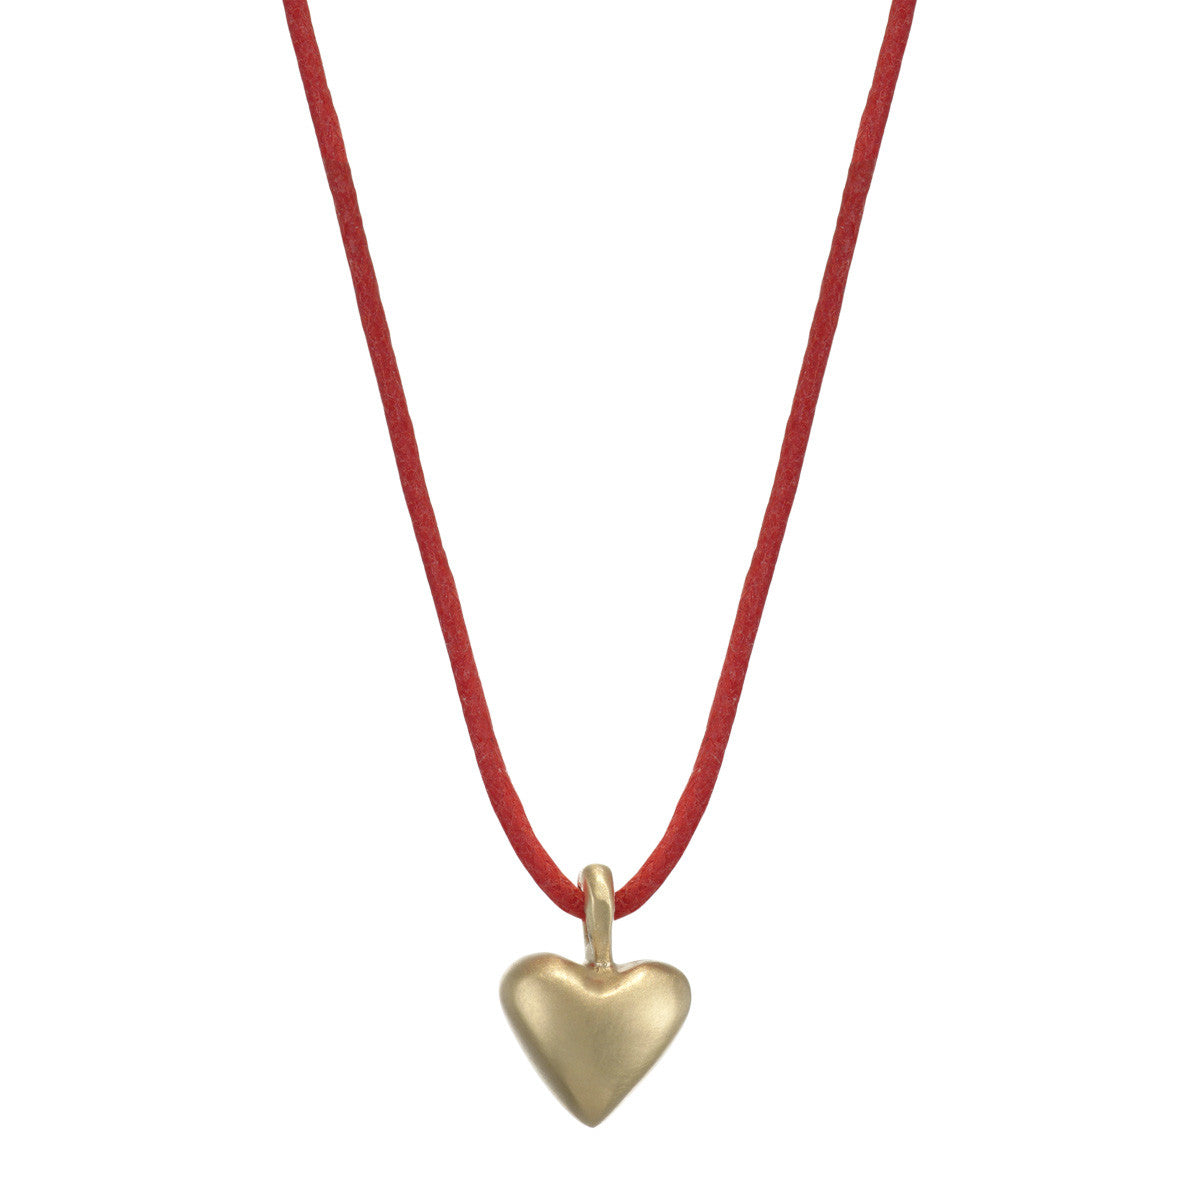 10K Gold Medium Heart Pendant on Red Cord